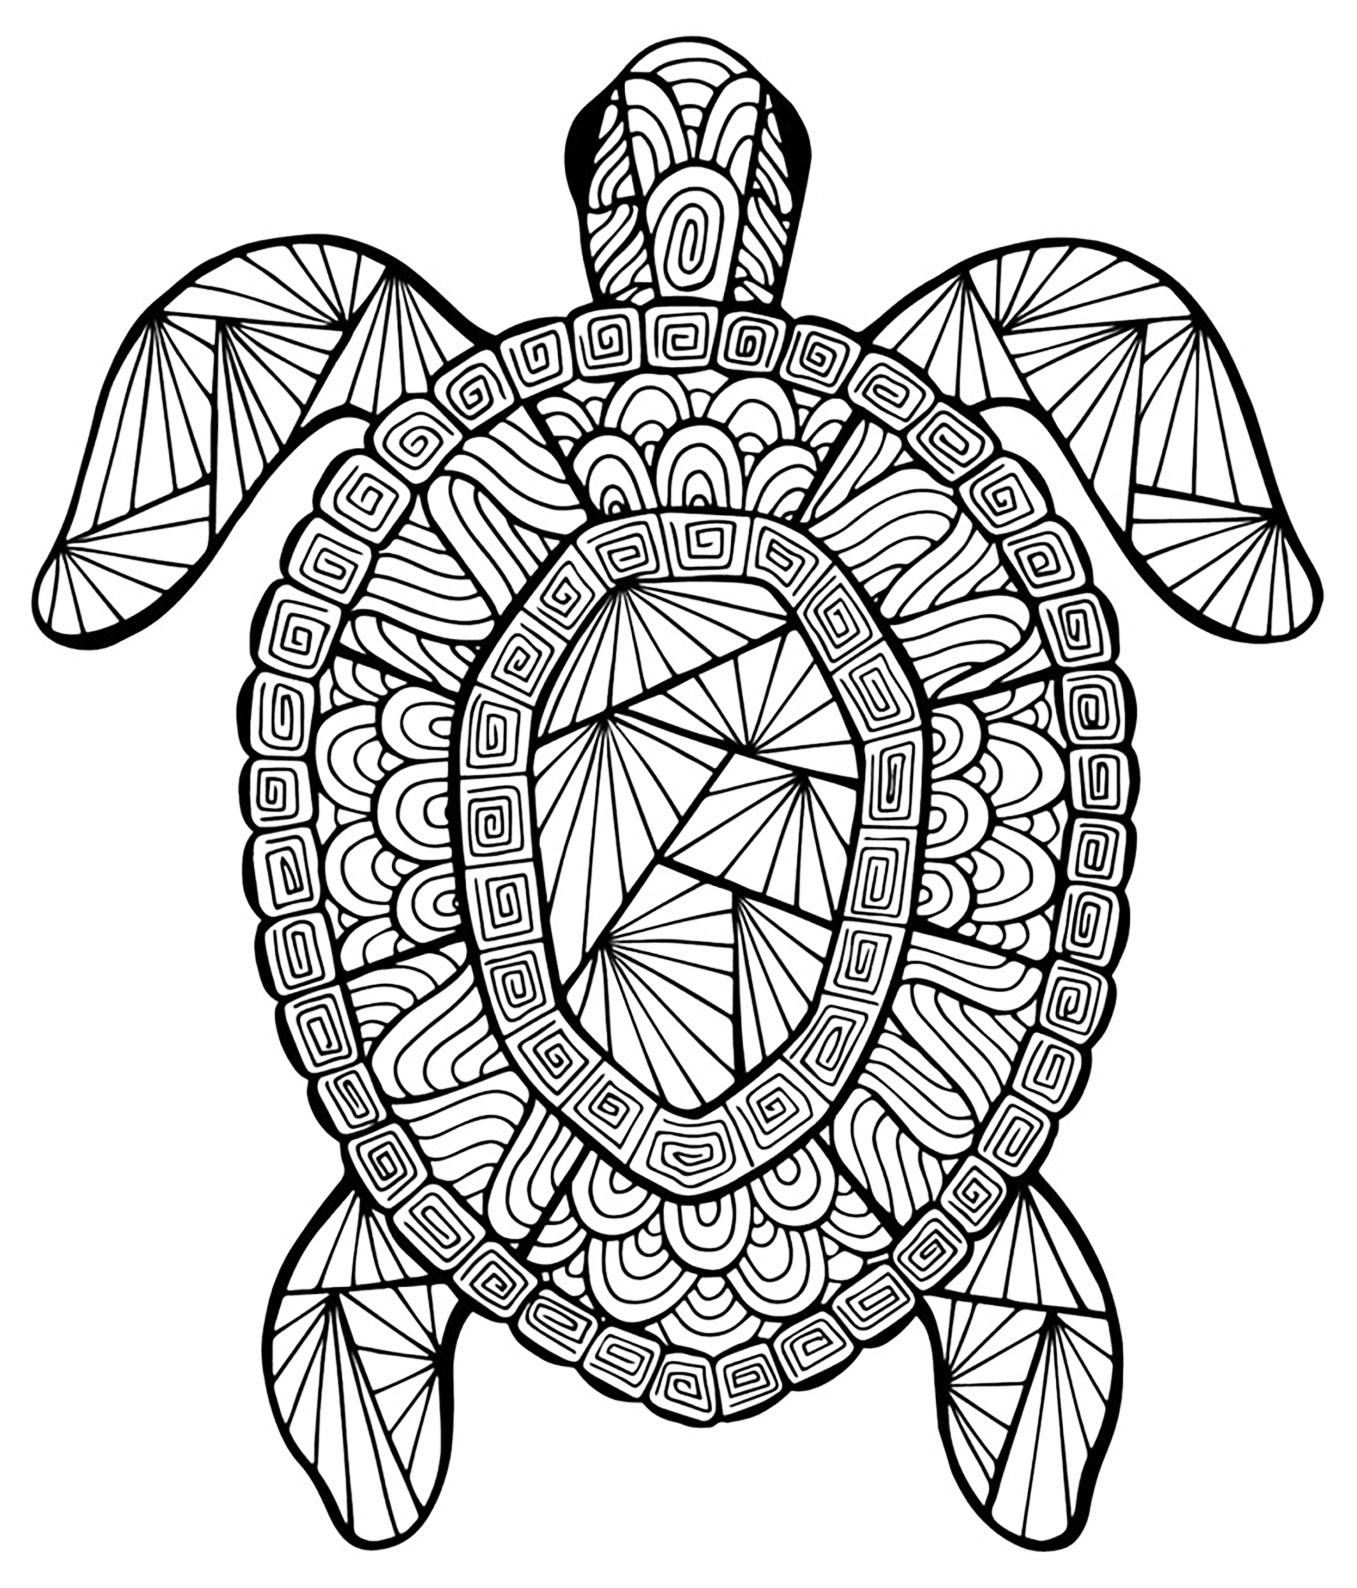 animal color sheet adult coloring pages animals best coloring pages for kids animal sheet color